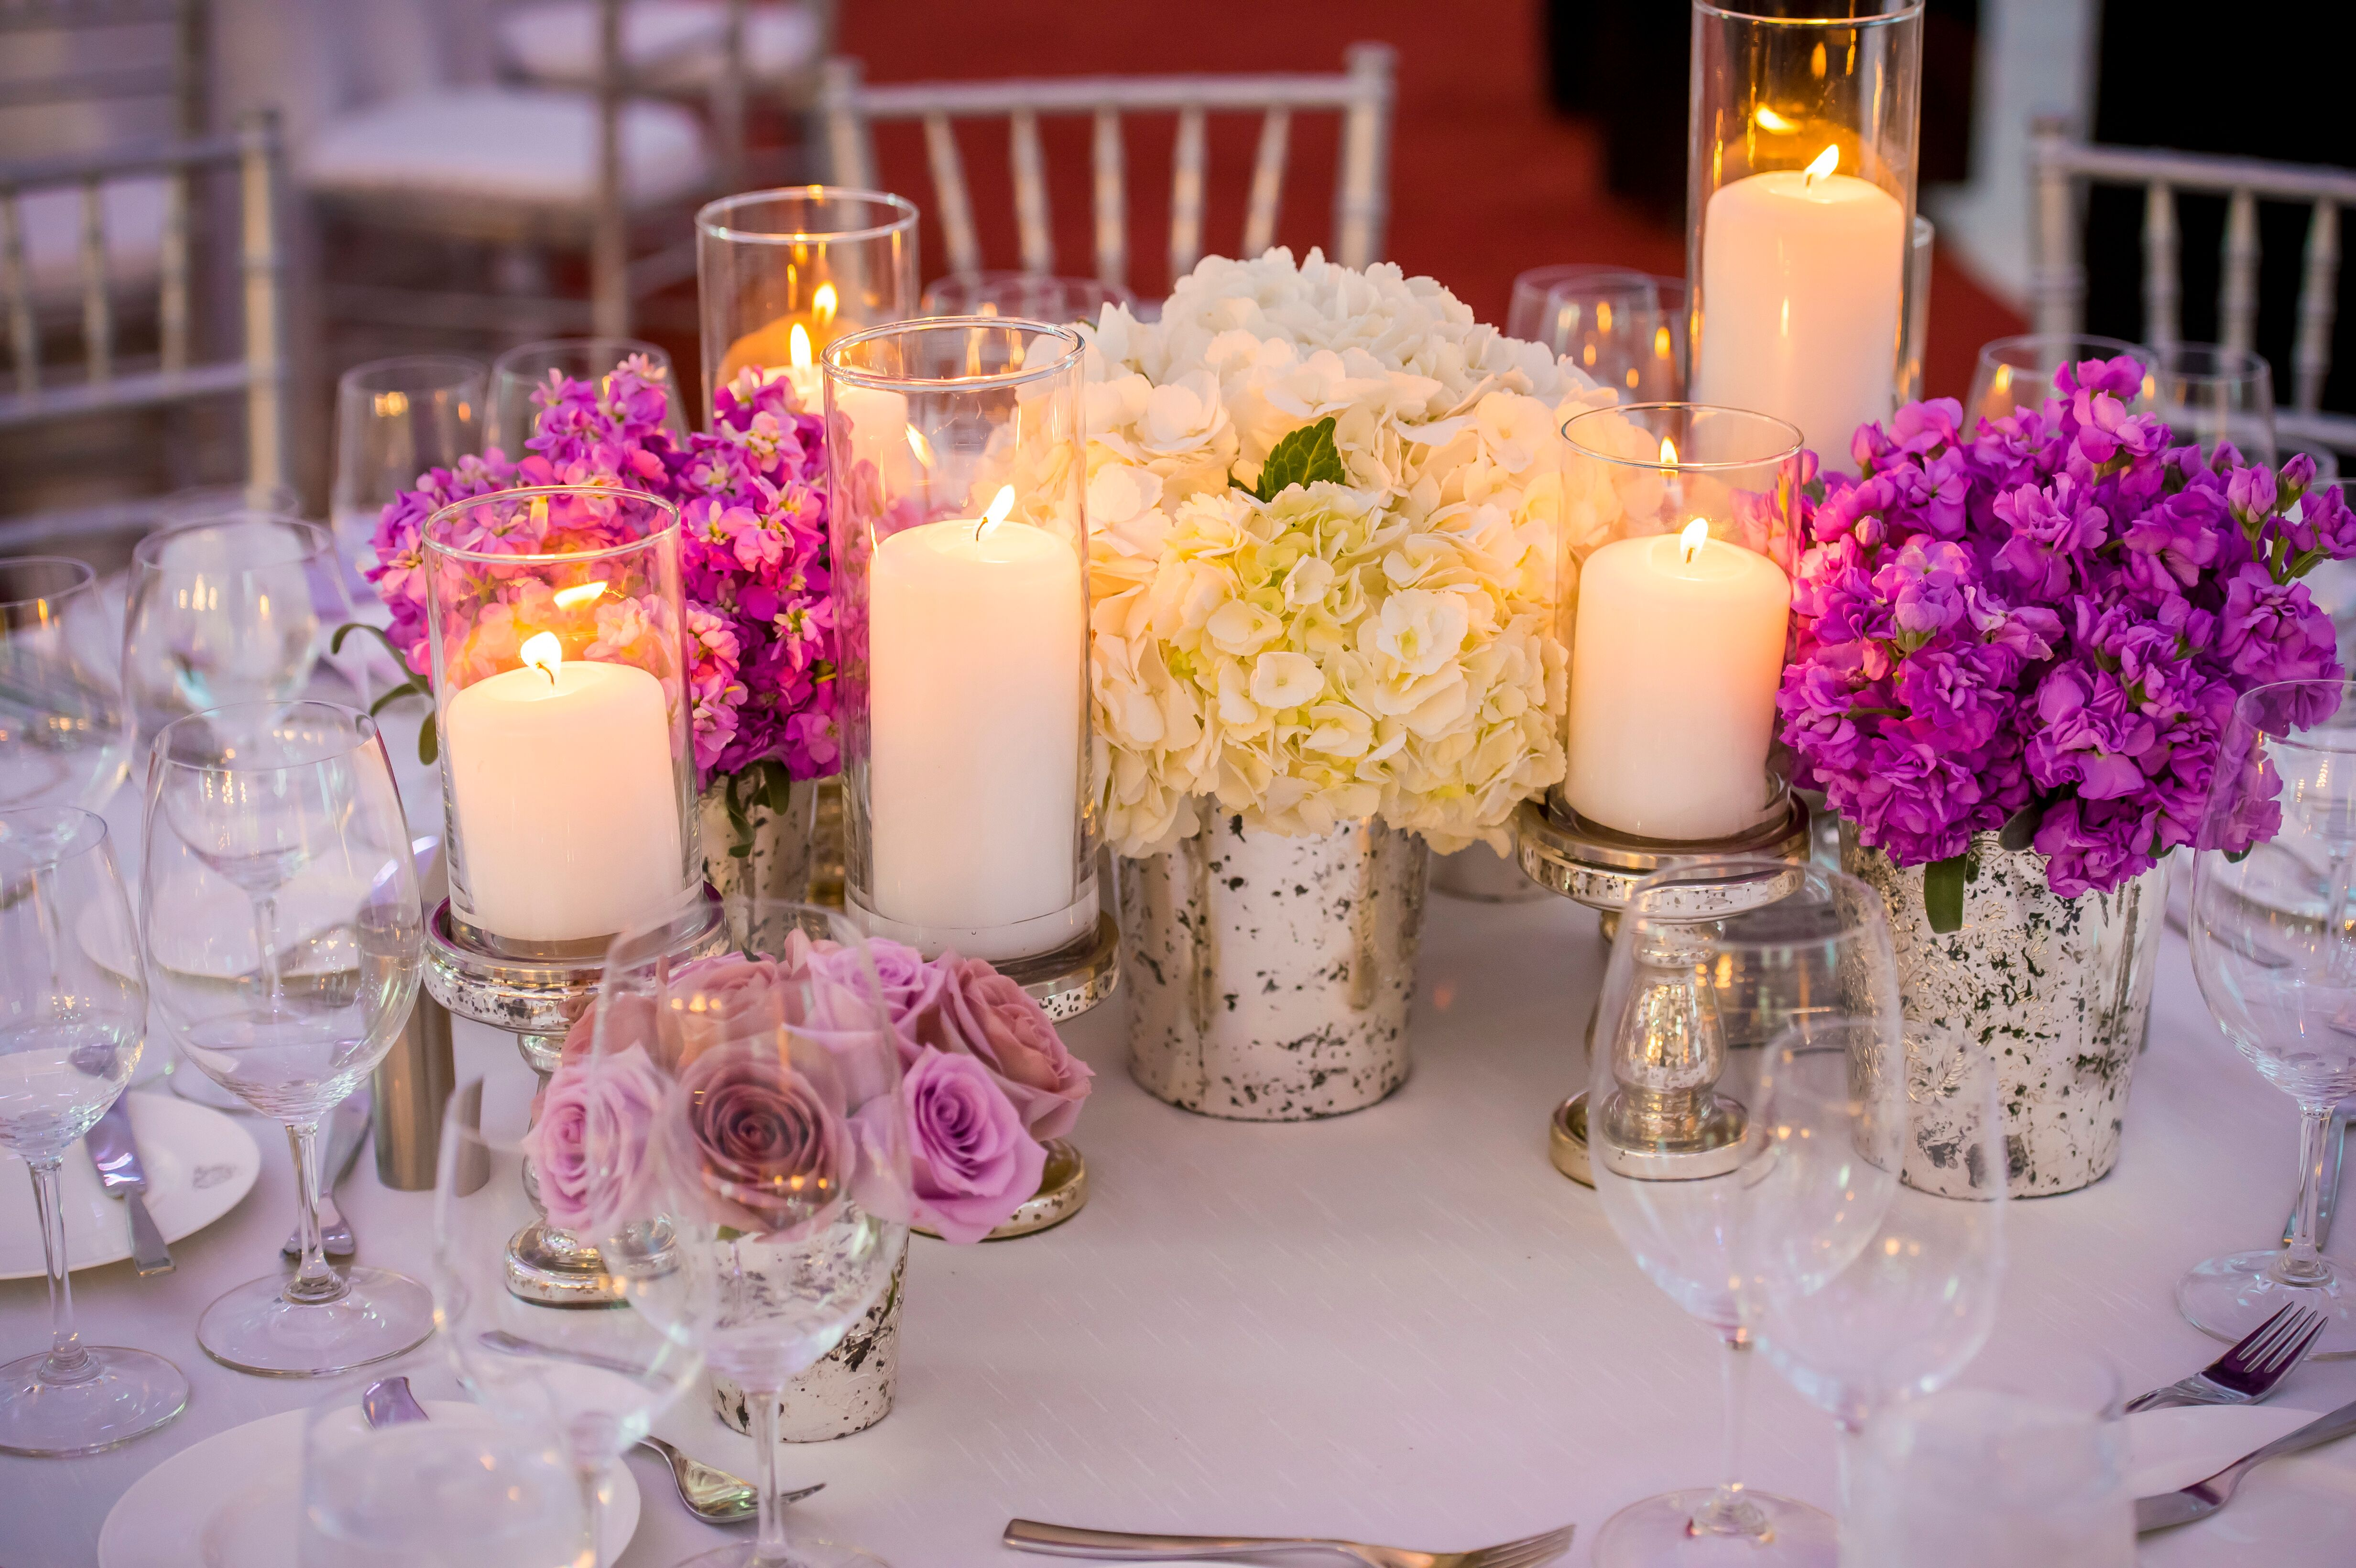 Low purple and white flower centerpieces